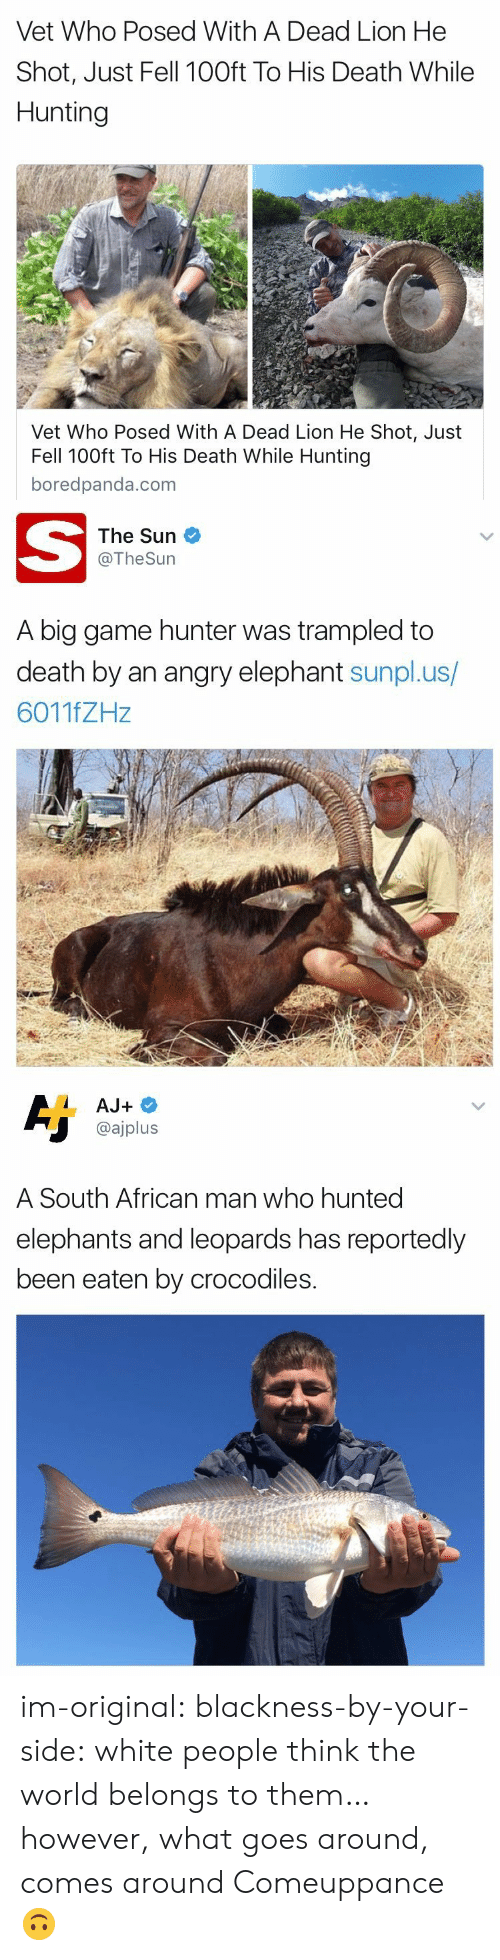 Hunted: Vet Who Posed With A Dead Lion He  Shot, Just Fell 100ft To His Death While  Hunting  Vet Who Posed With A Dead Lion He Shot, Just  Fell 100ft To His Death While Hunting  boredpanda.com   The Sun  @TheSurn  A big game hunter was trampled to  death by an angry elephant sunpl.us/  6011fZHz   @ajplus  A South African man who hunted  elephants and leoparas has reportedly  been eaten by crocodiles. im-original: blackness-by-your-side:  white people think the world belongs to them… however, what goes around, comes around  Comeuppance 🙃